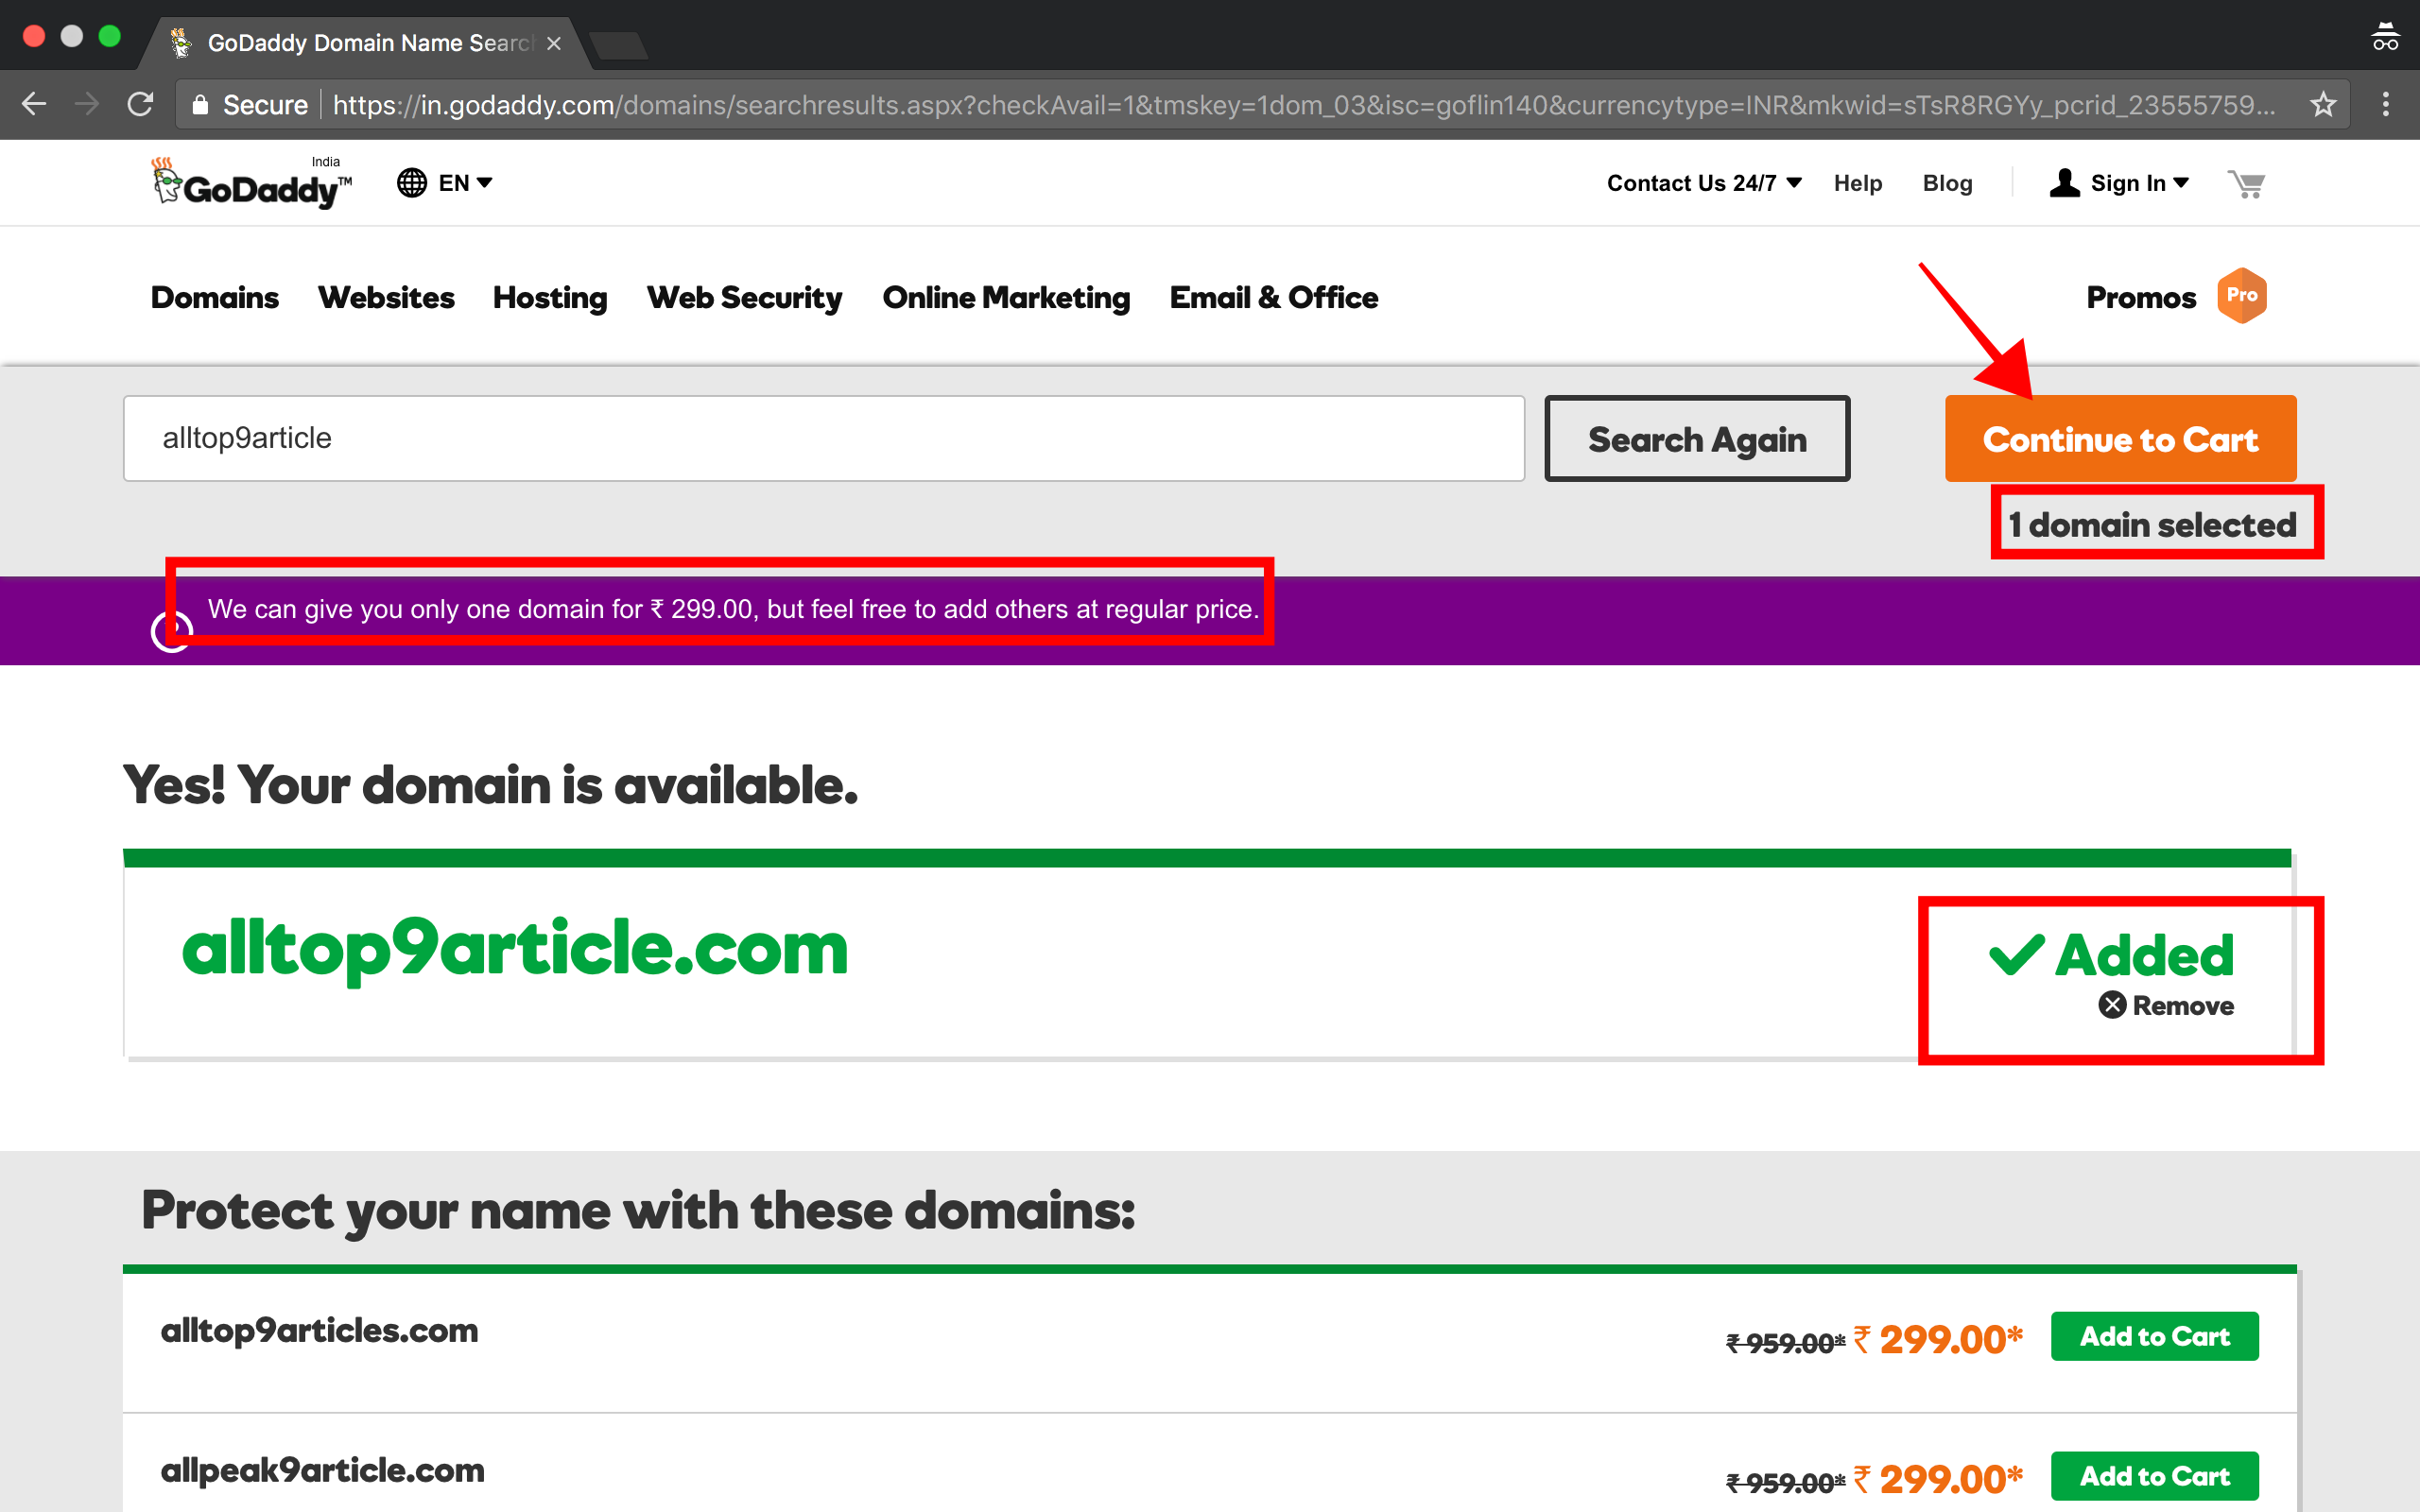 domain-name-added-to-cart-to-buy